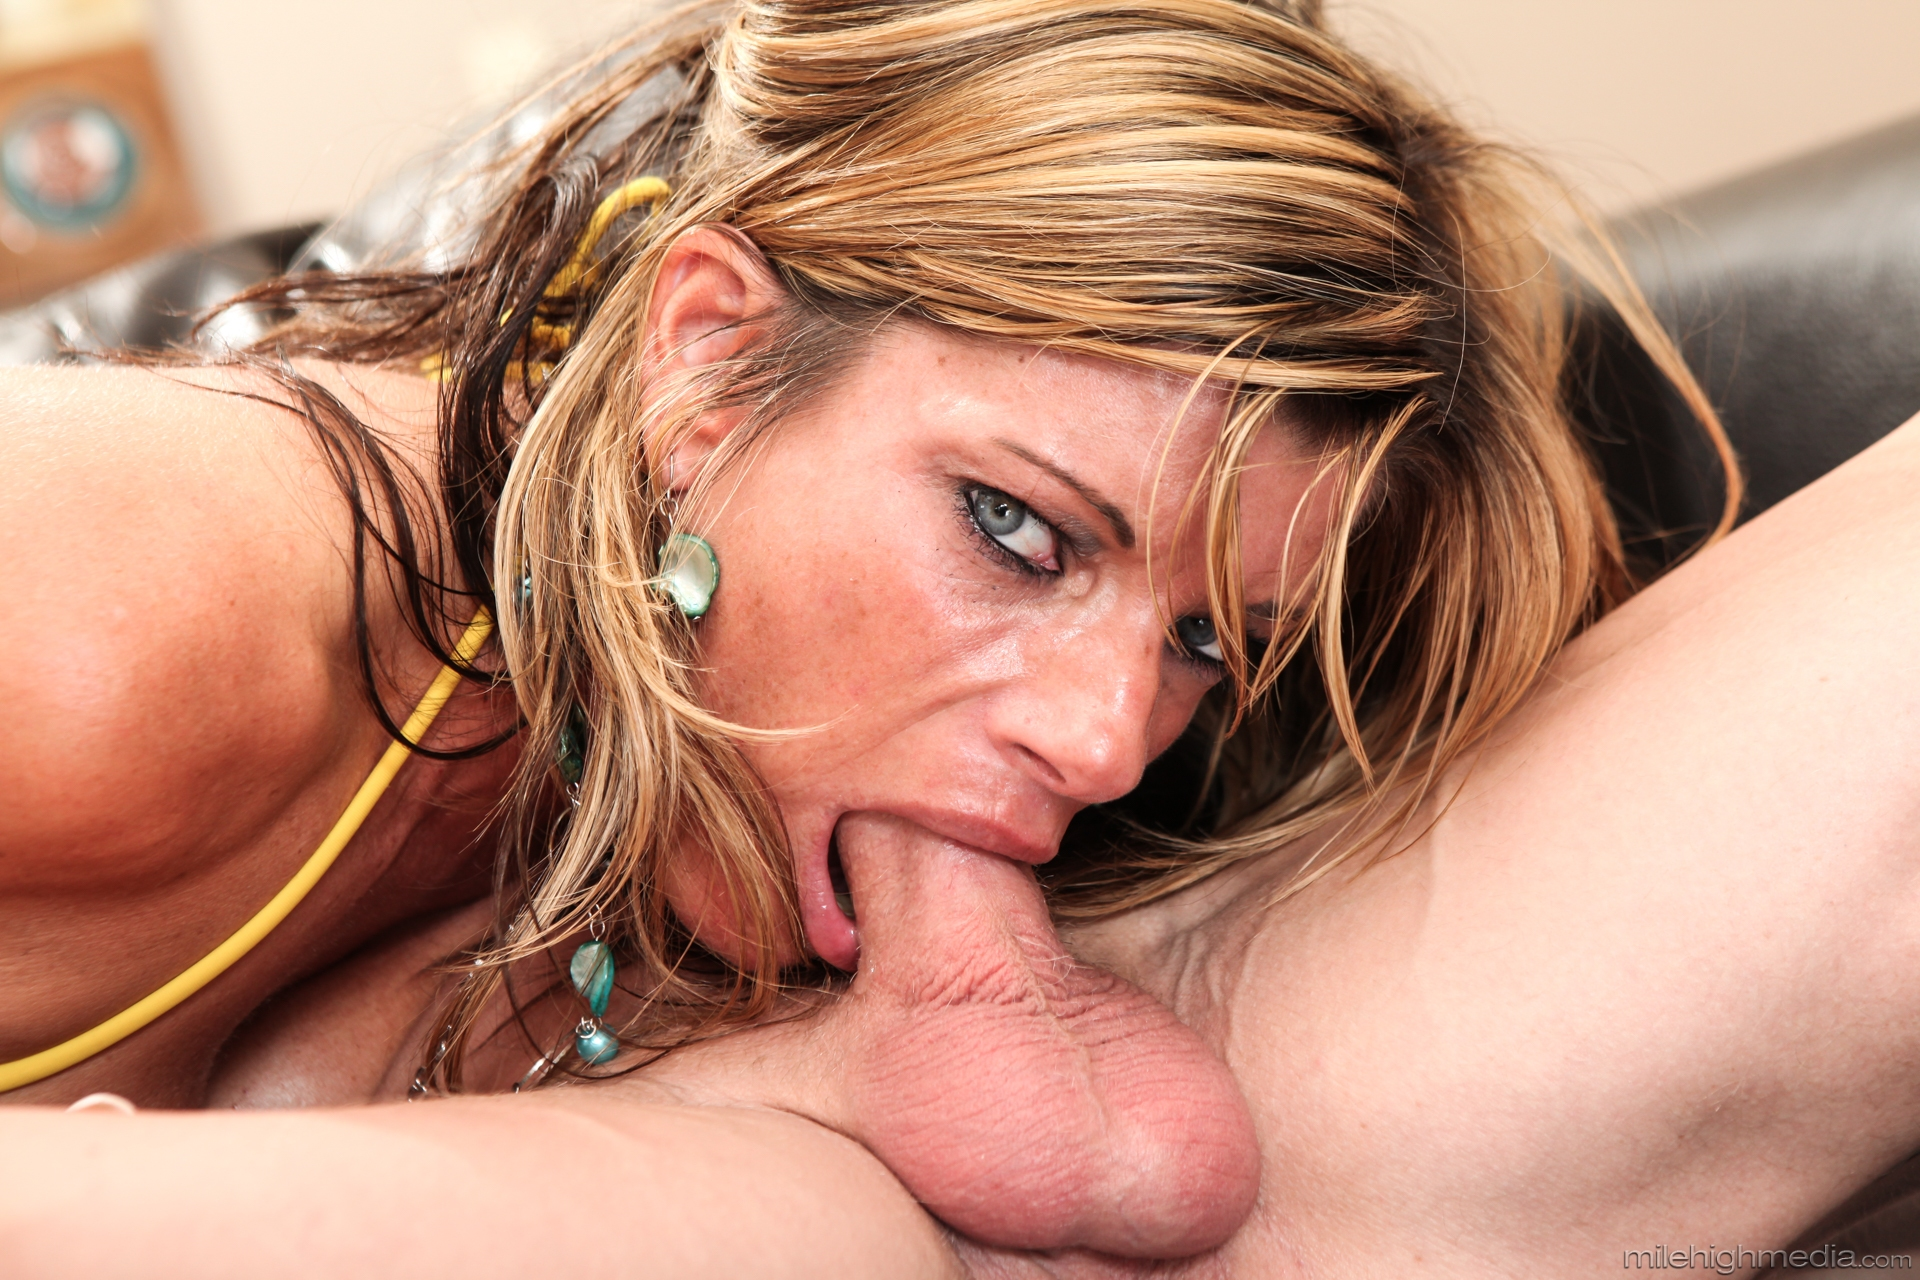 Kristal summers porn pic, gifs and pics